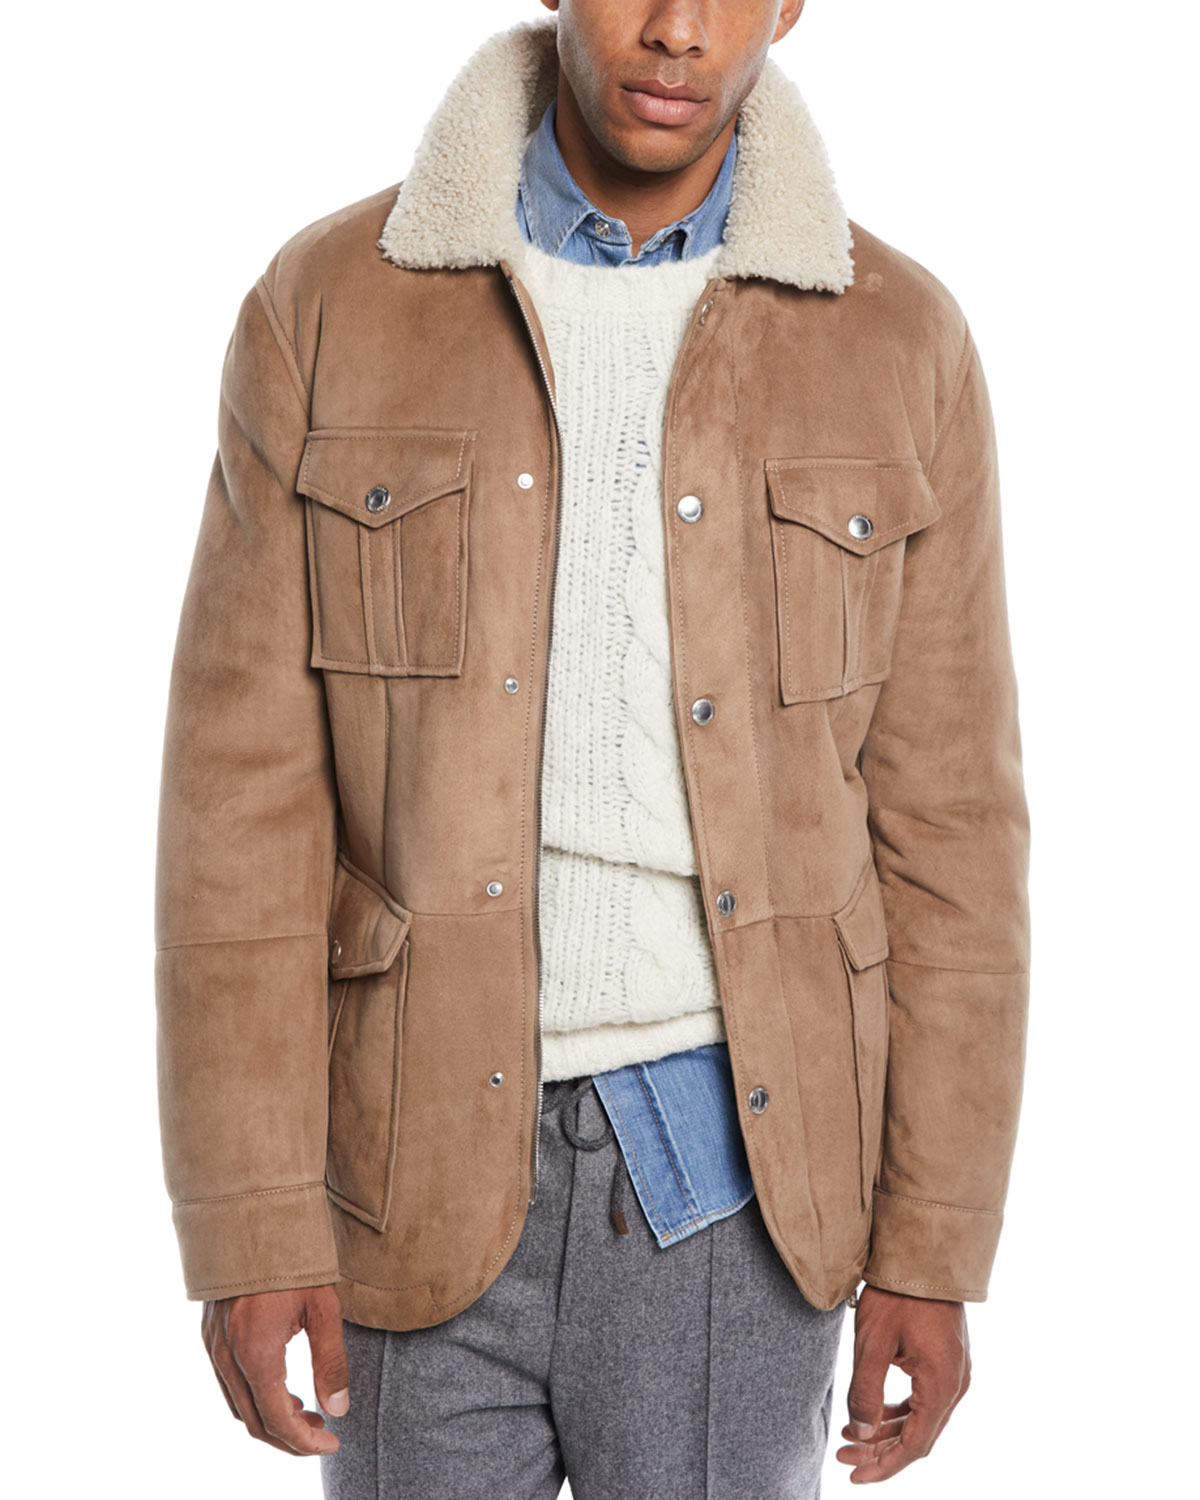 Brunello Cucinelli Men S Fur Lined Suede Safari Jacket Neiman Marcus